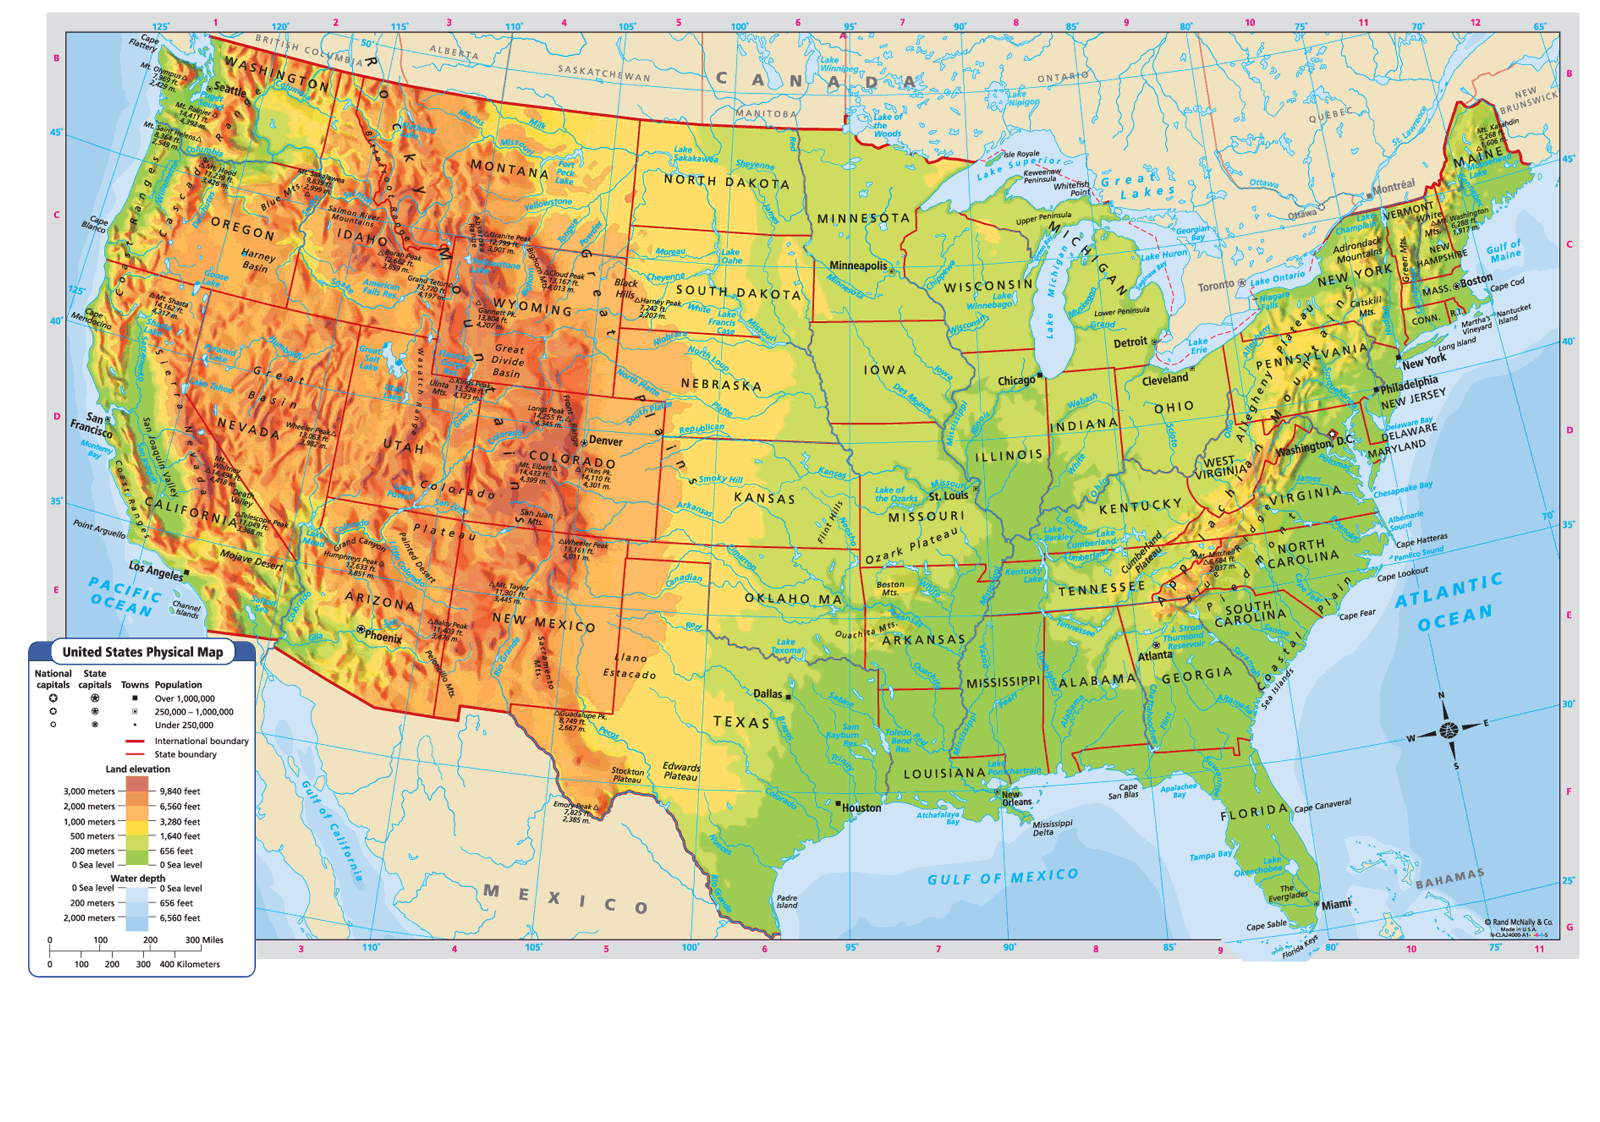 Topographic Map Of Us States.United States Physical Map Favorite Places Spaces Topographic